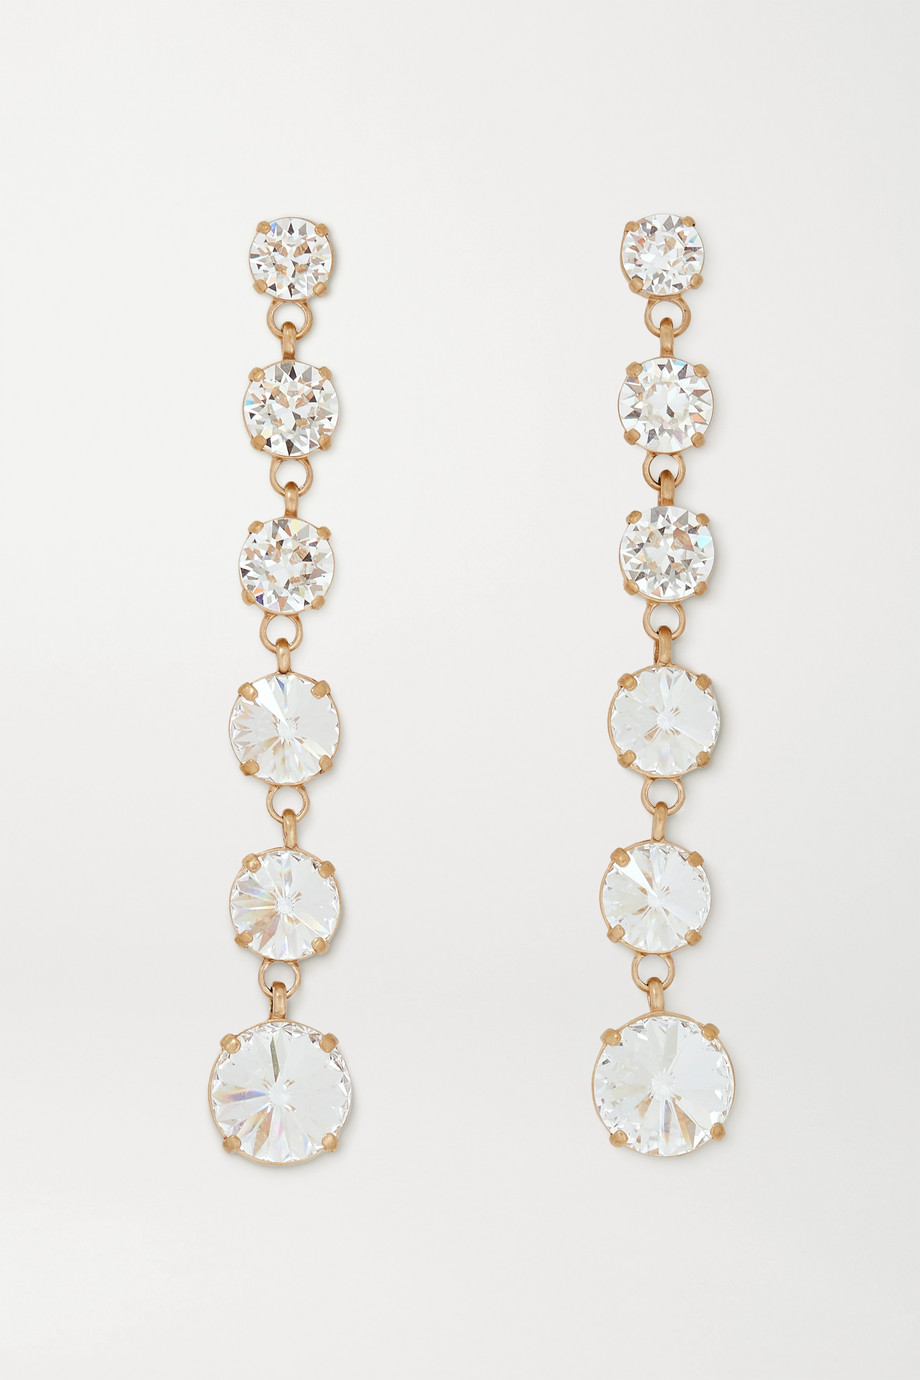 Roxanne Assoulin Gold-tone Swarovski crystal earrings